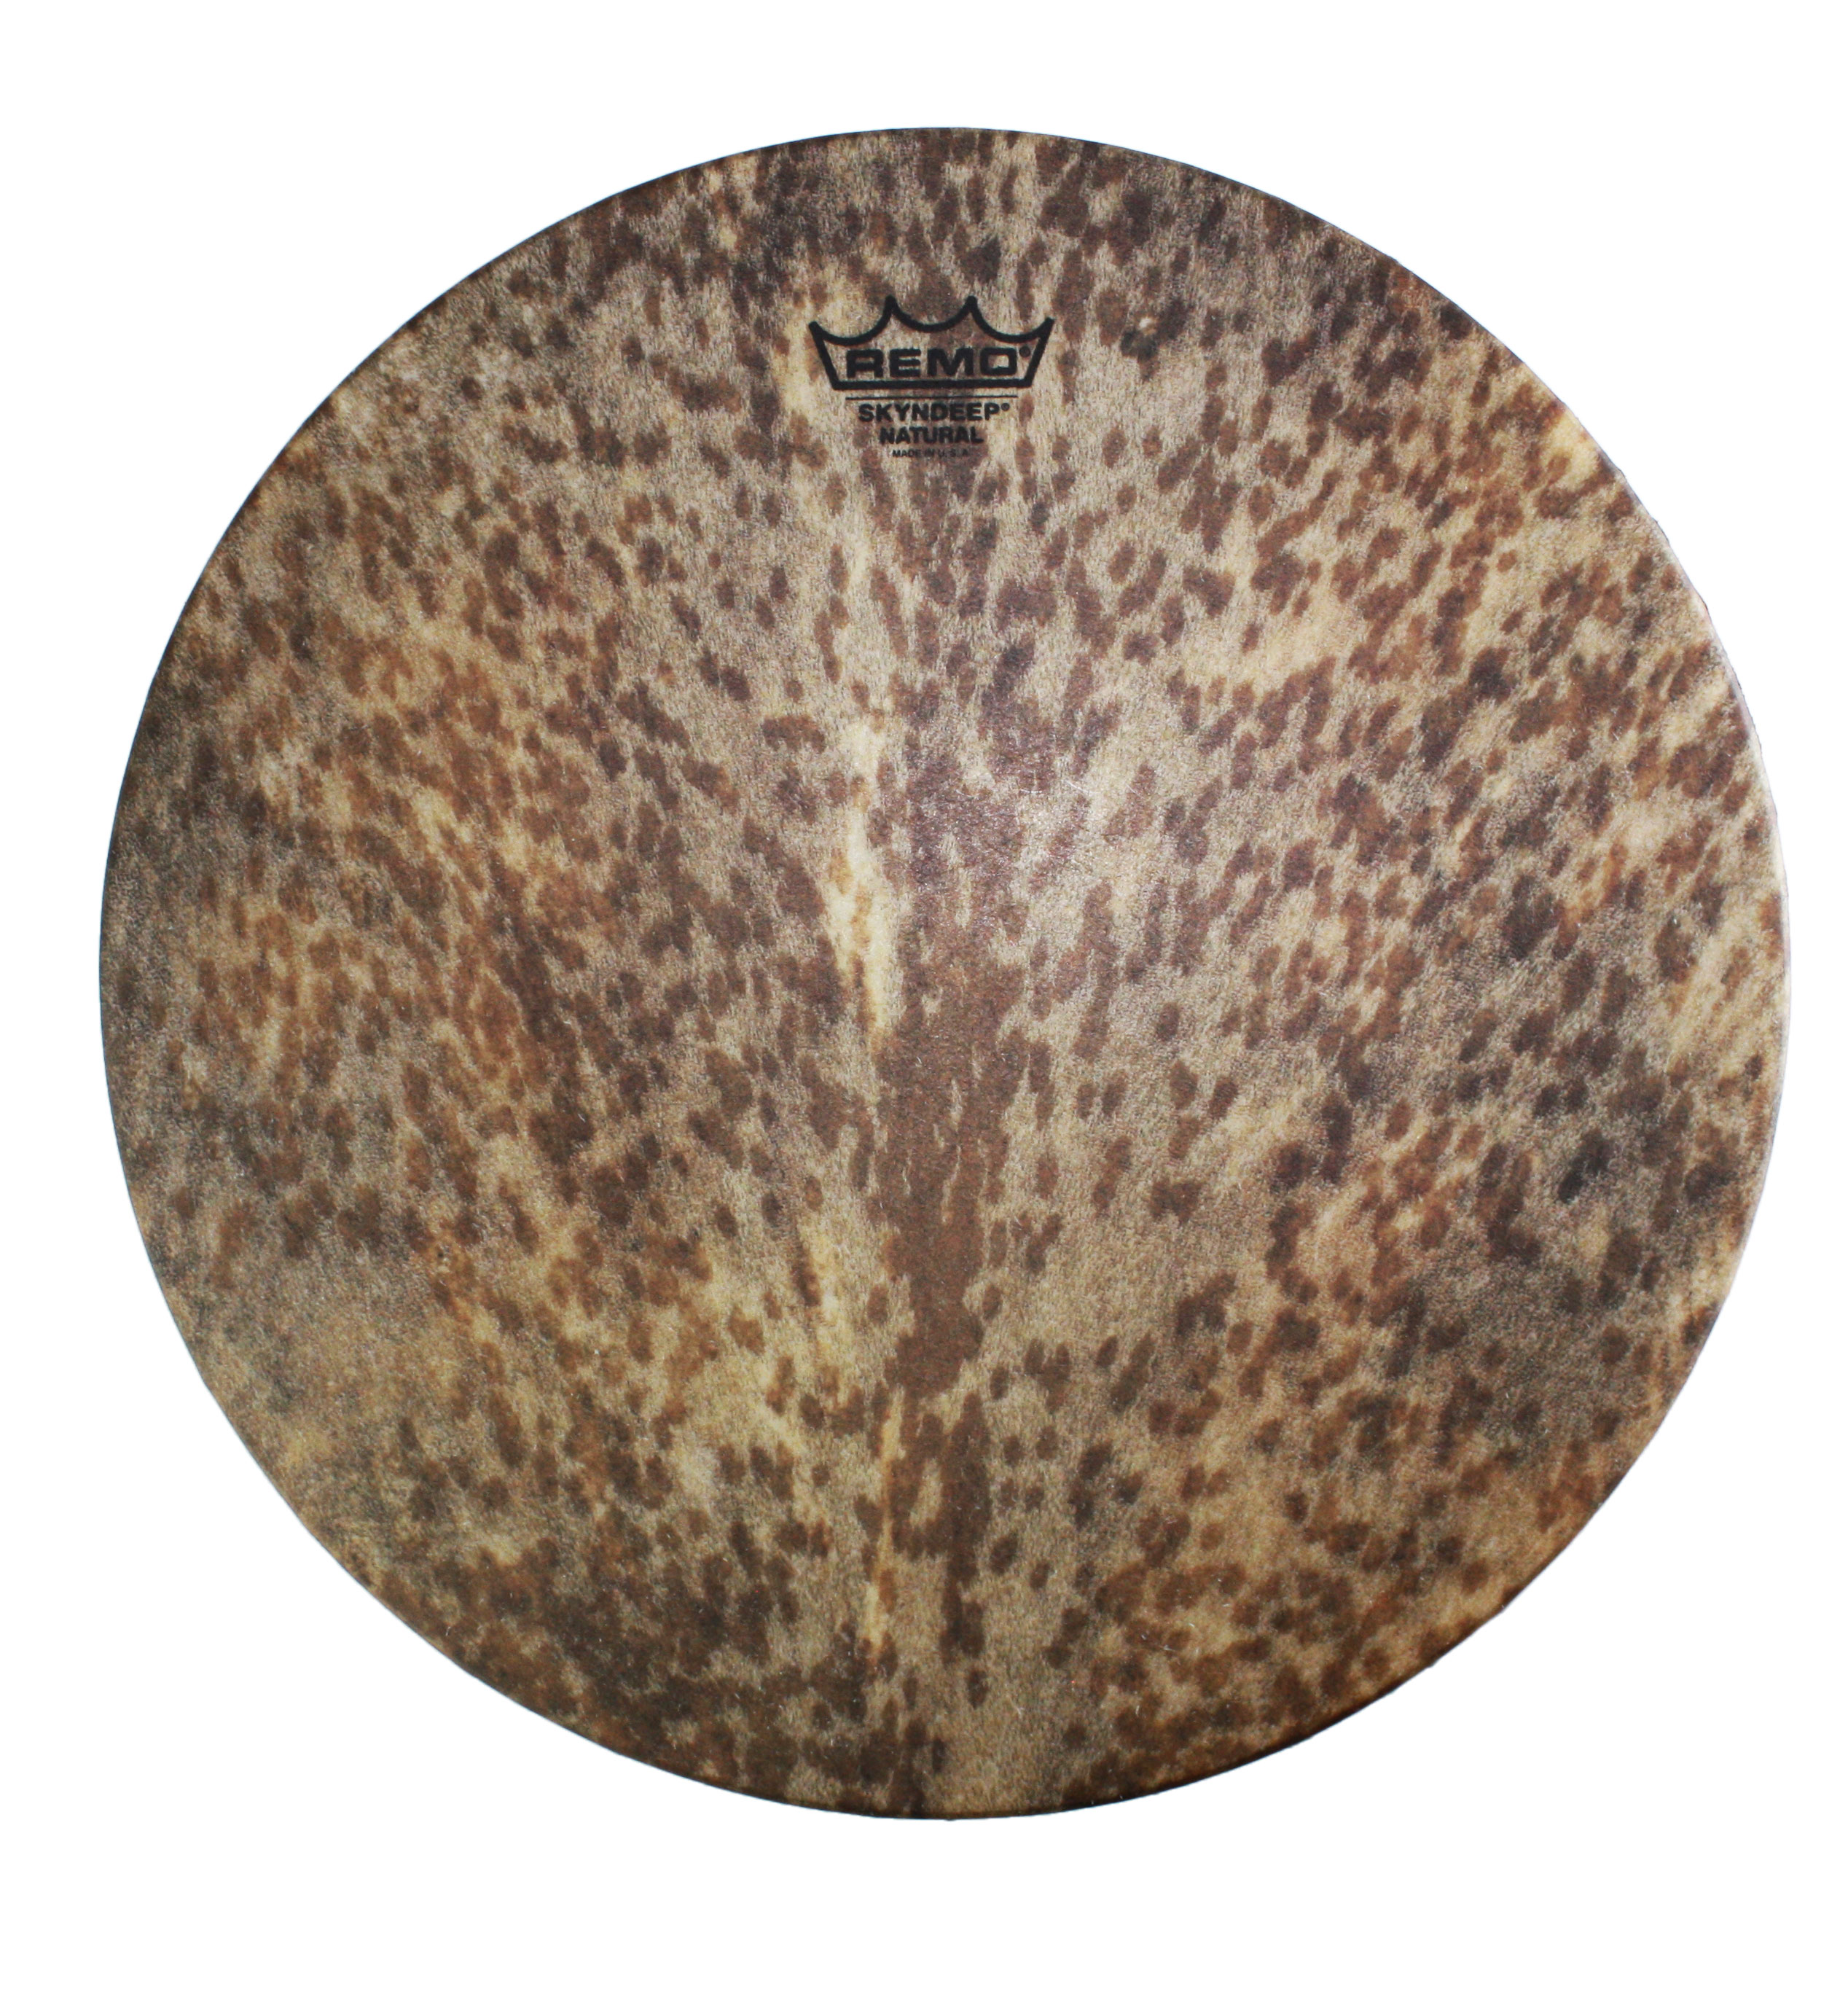 """Remo 14"""" Mondo Skyndeep Djembe Drum Head with Goat Stripe Brown Graphic"""